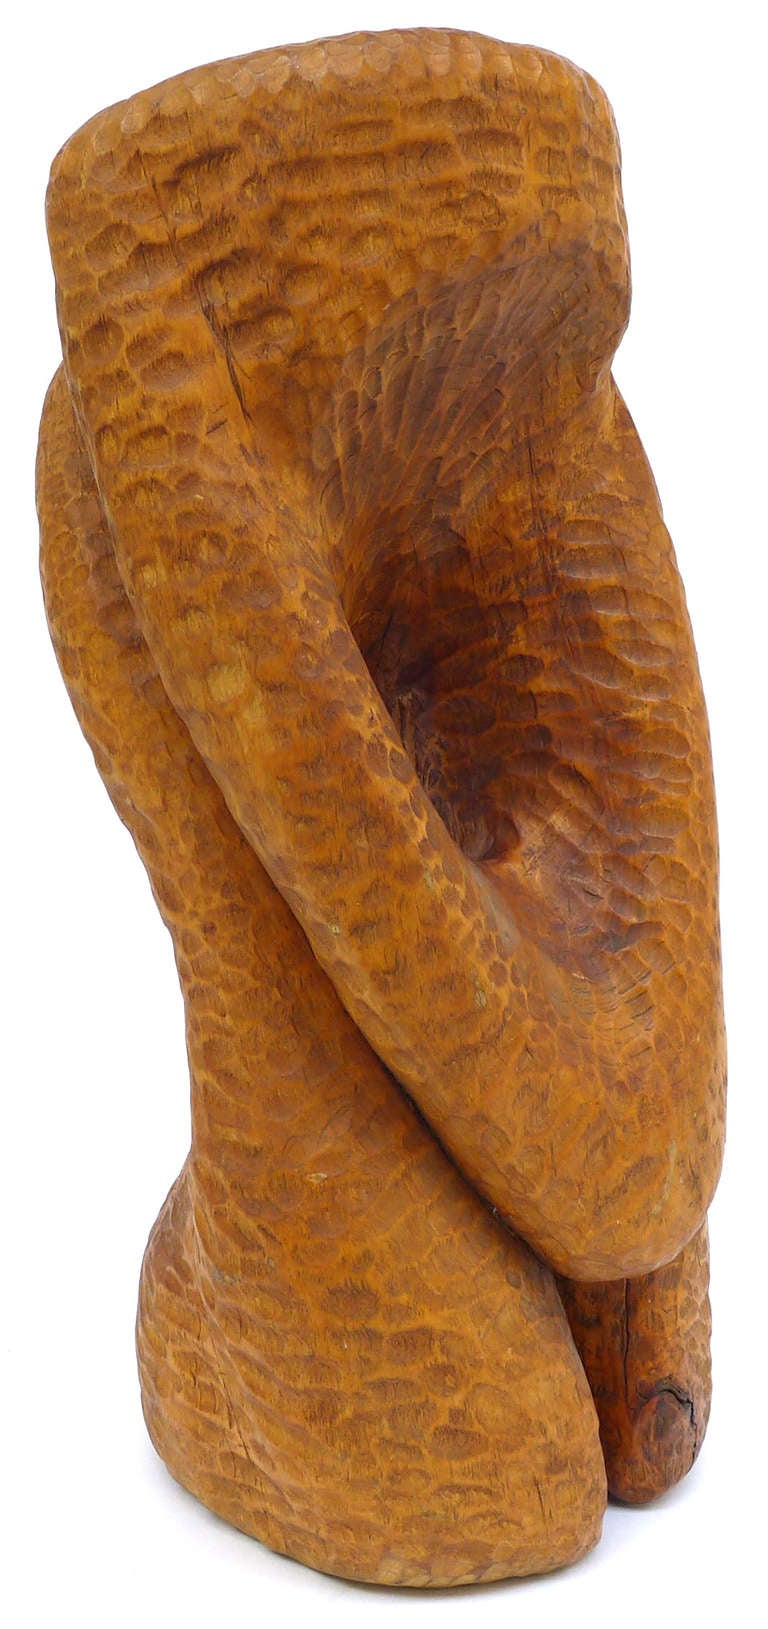 Spectacular biomorphic chip carved wood sculpture for sale